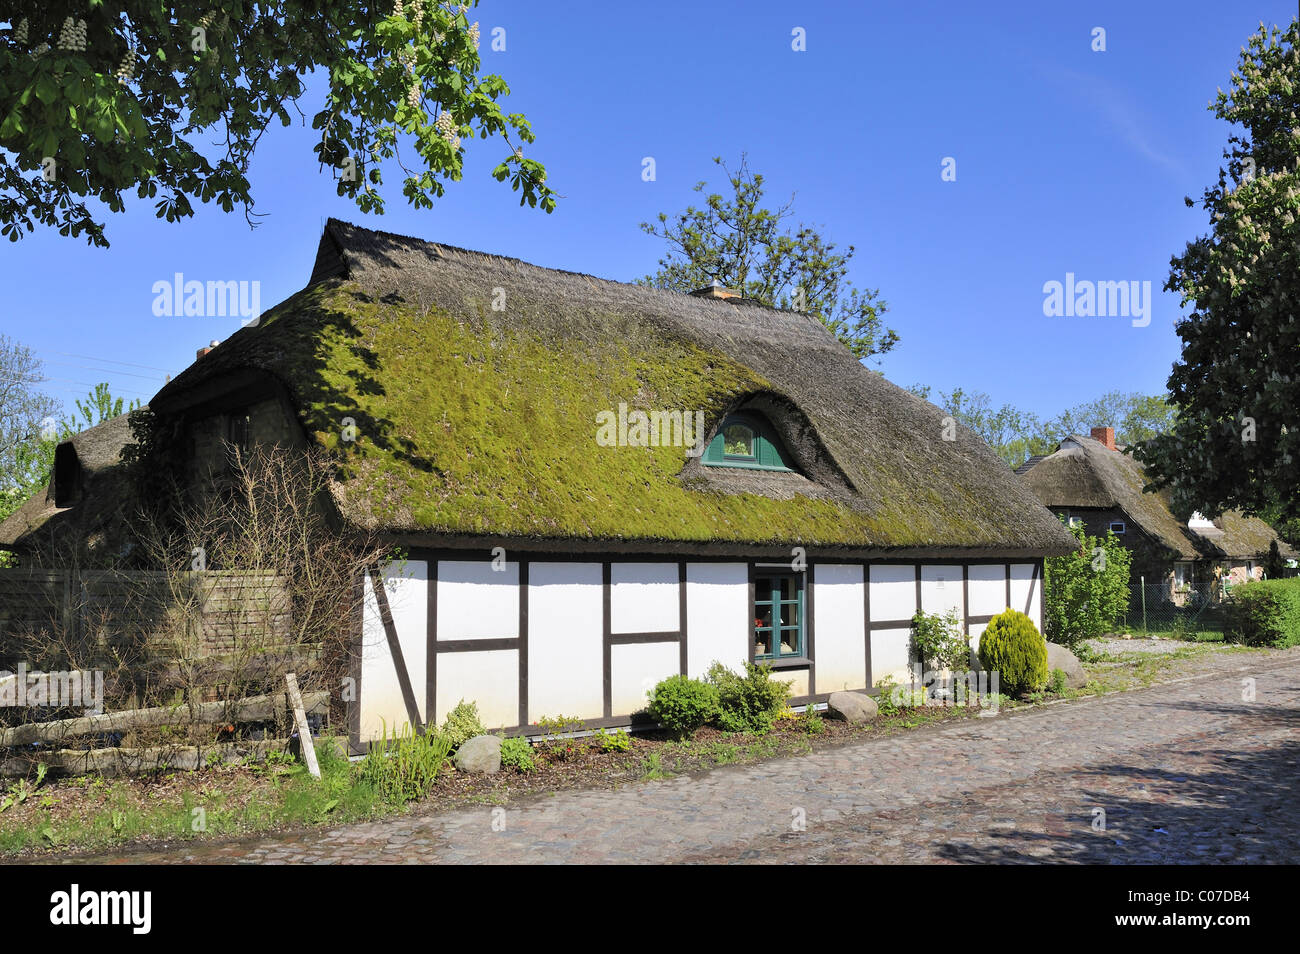 Traditional Low German-built hall house in a village street at Sagard, Ruegen island, Mecklenburg-Western Pomerania - Stock Image